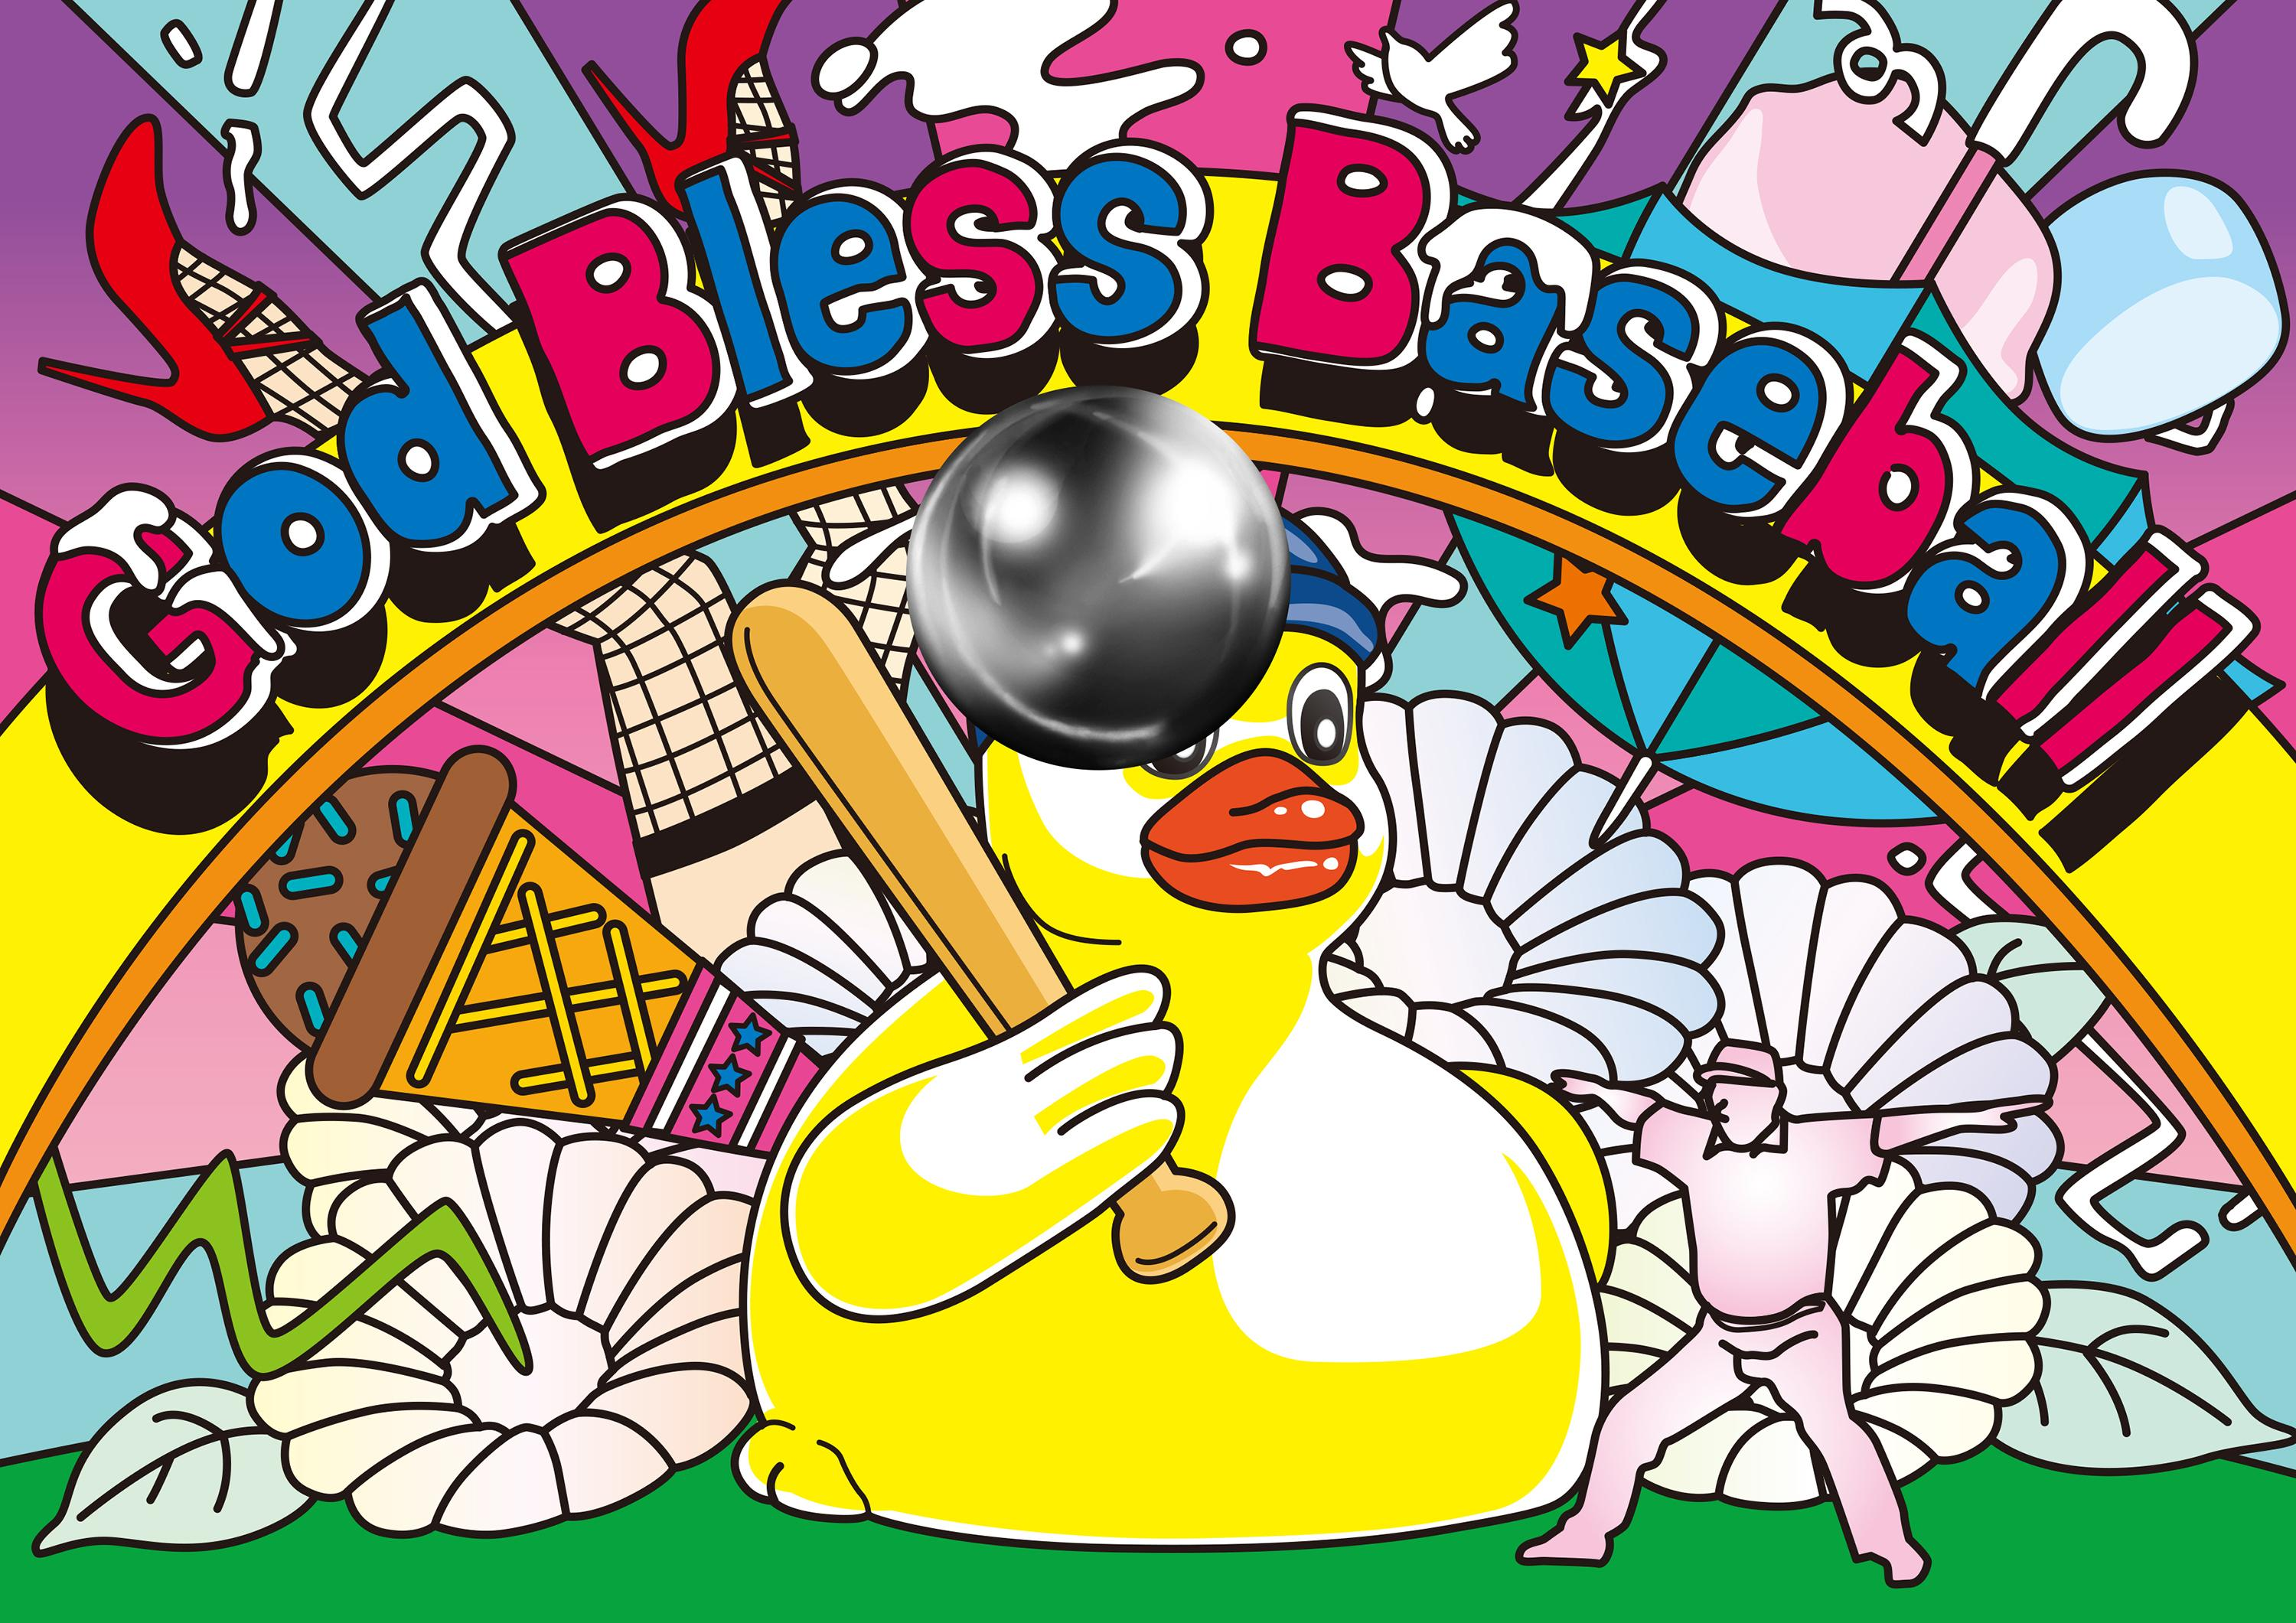 """A colorful illustration of a large yellow rubber duck carrying a baseball bat is partially obscured by a silver illusionistic sphere and surrounded by assorted objects and an arch with the text """"God Bless Baseball."""""""